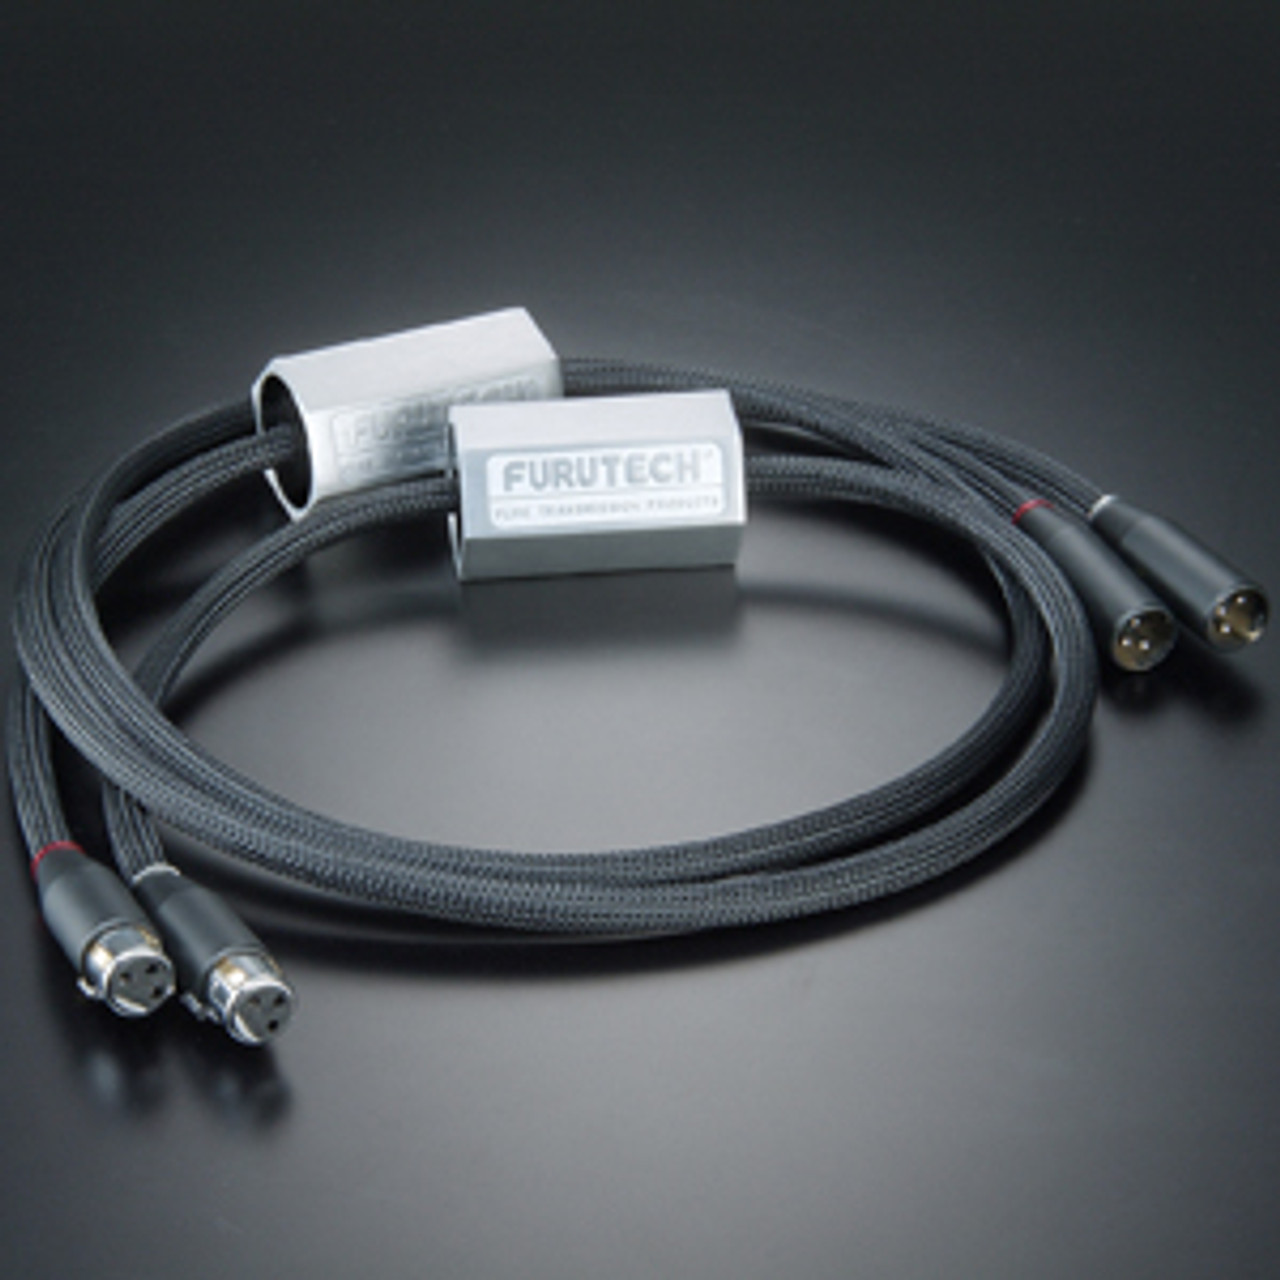 Furutech Reference III Audio XLR cable